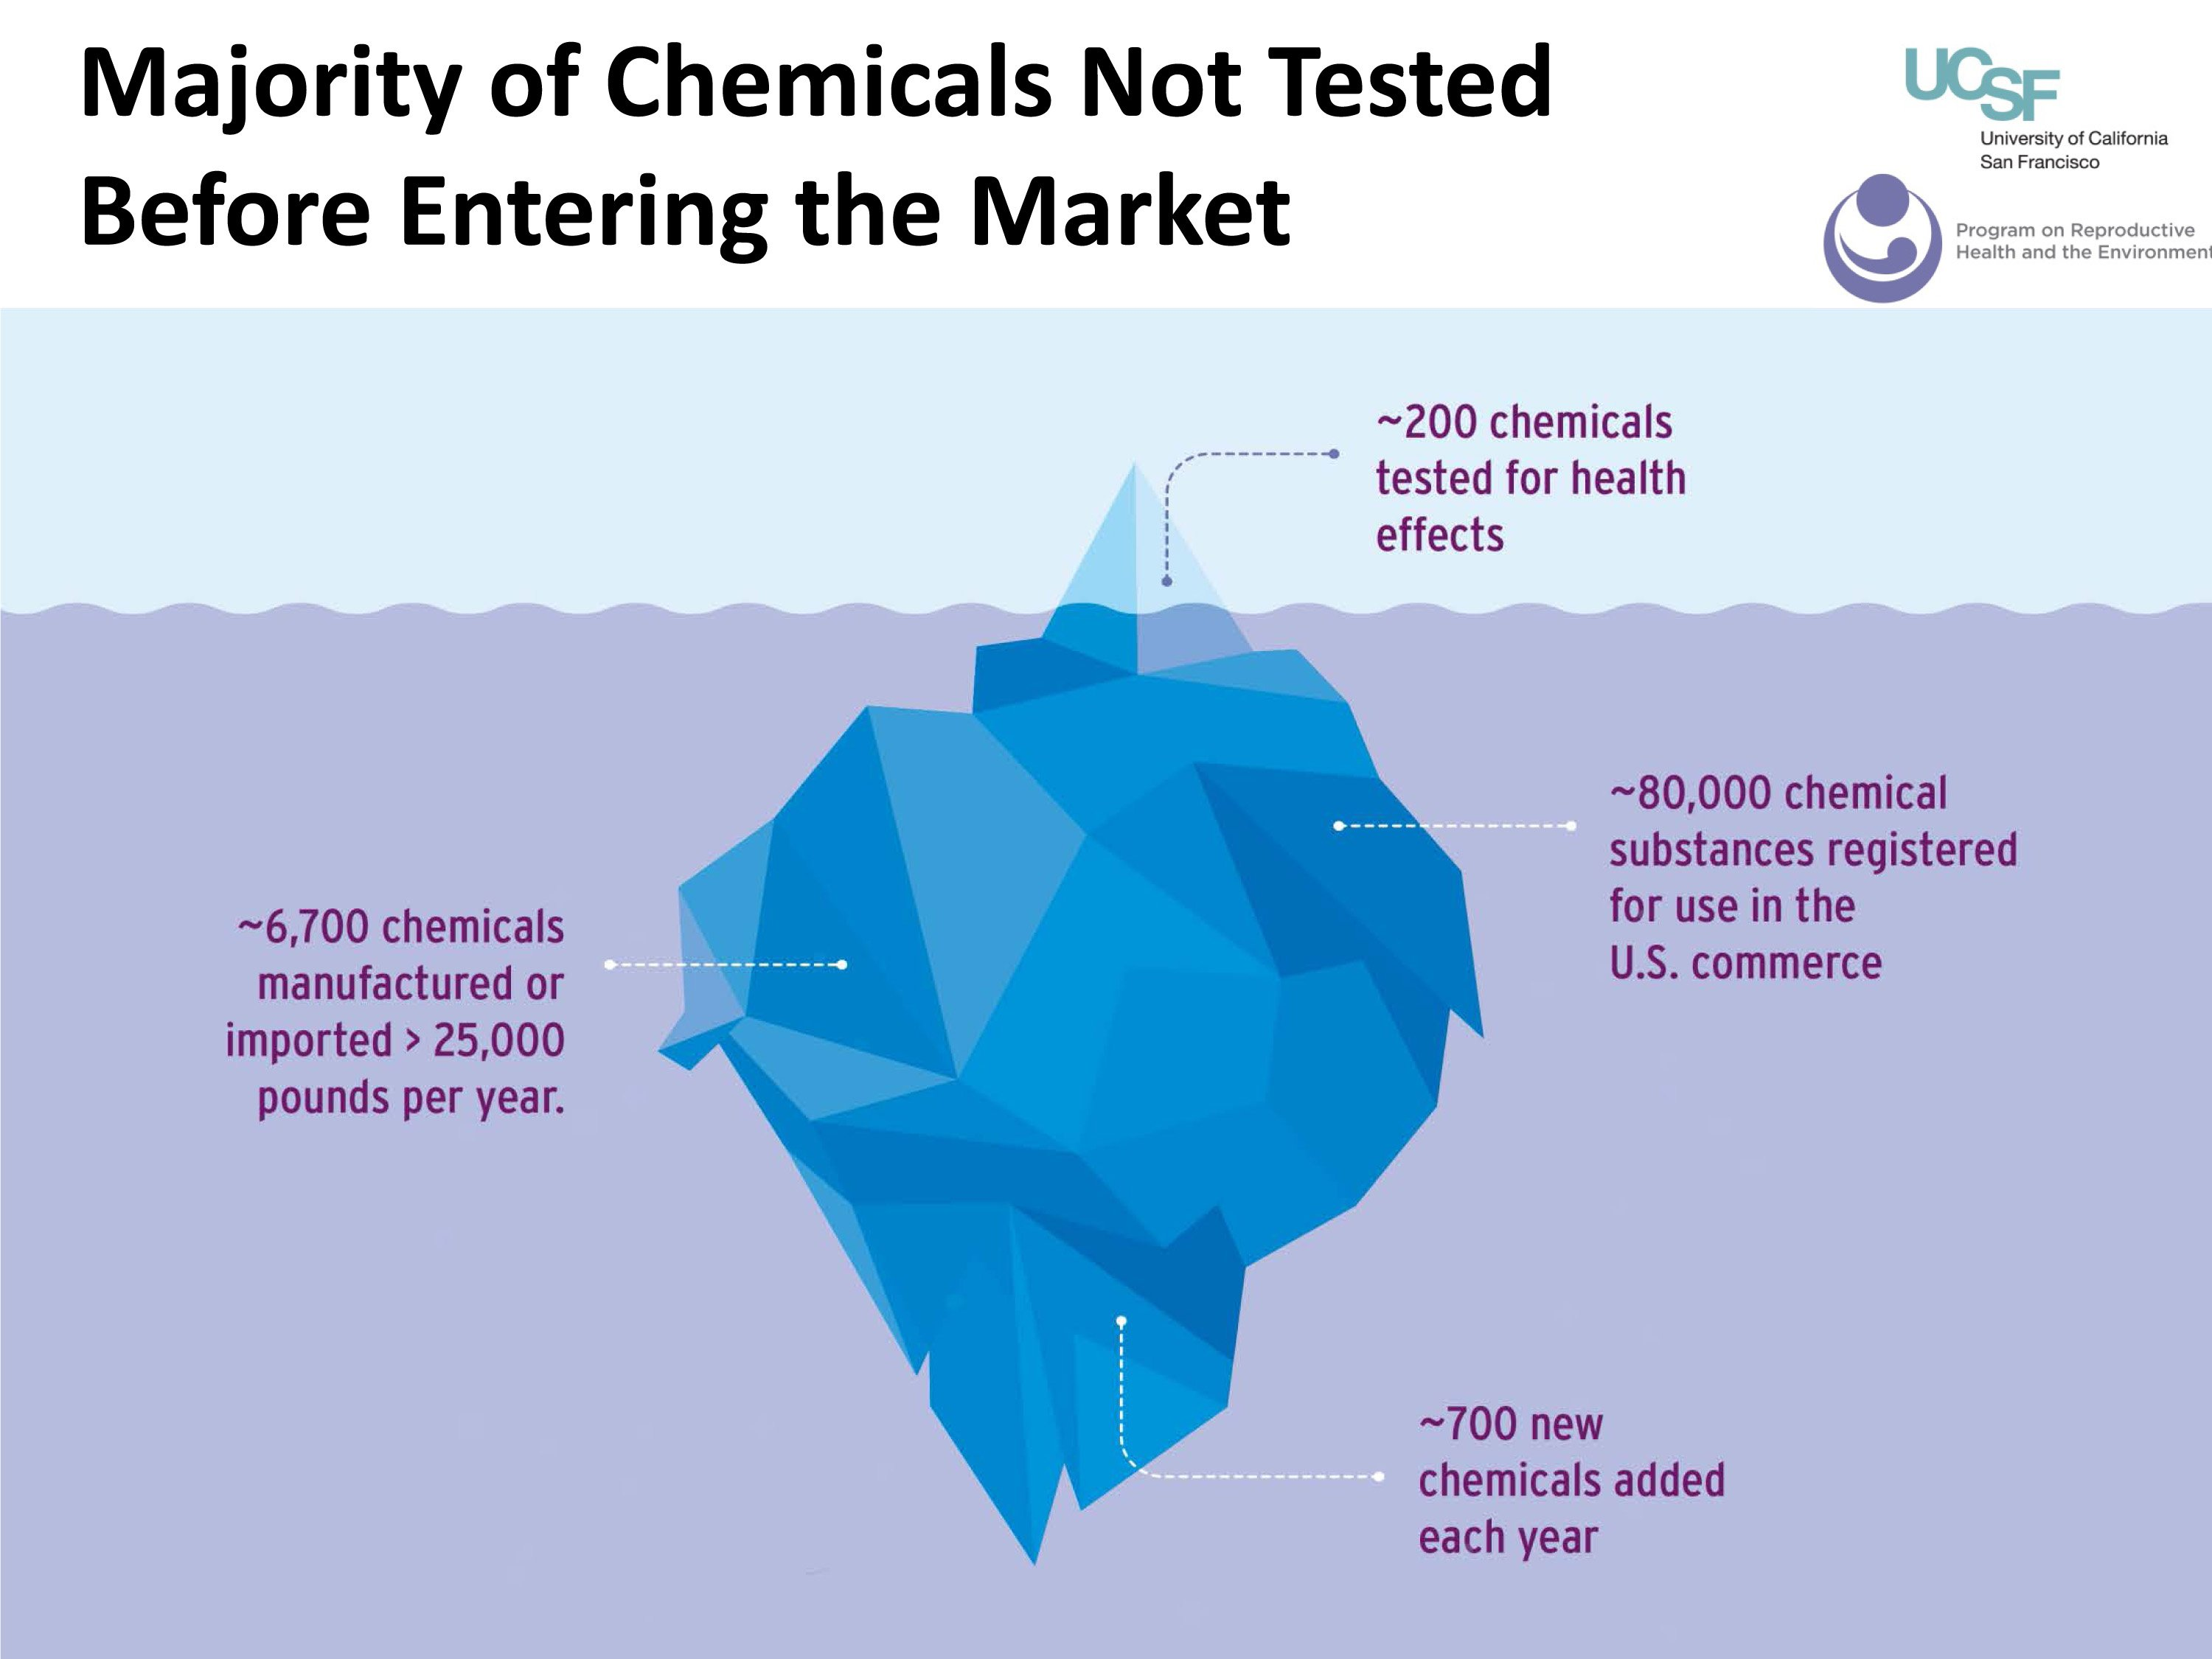 Untested Chemicals are the majority